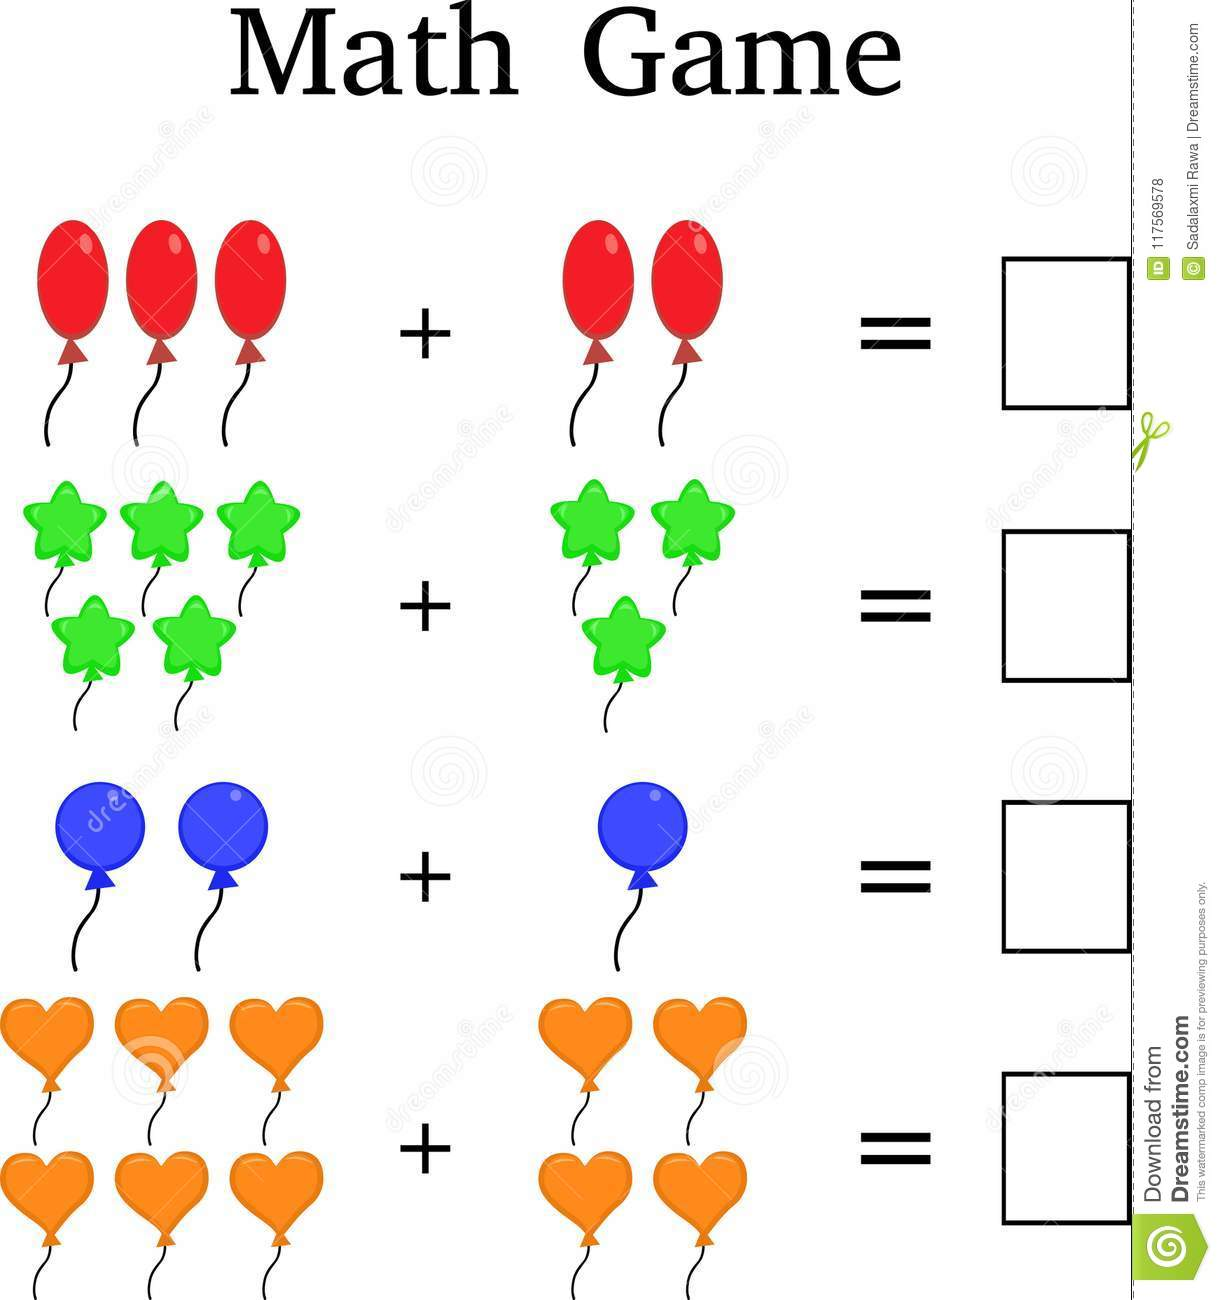 hight resolution of Mathematics Educational Game For Kids Stock Photo - Illustration of orange